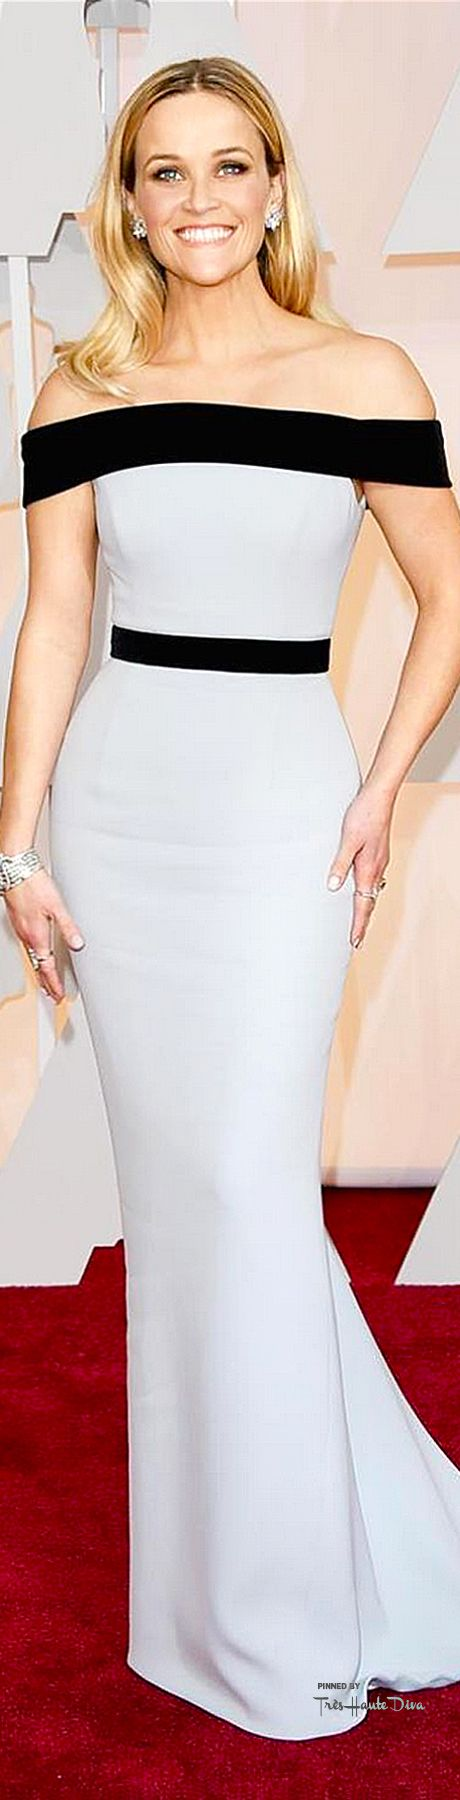 #Oscars 2015 Reese Witherspoon in Tom Ford - 2nd best dressed of the night